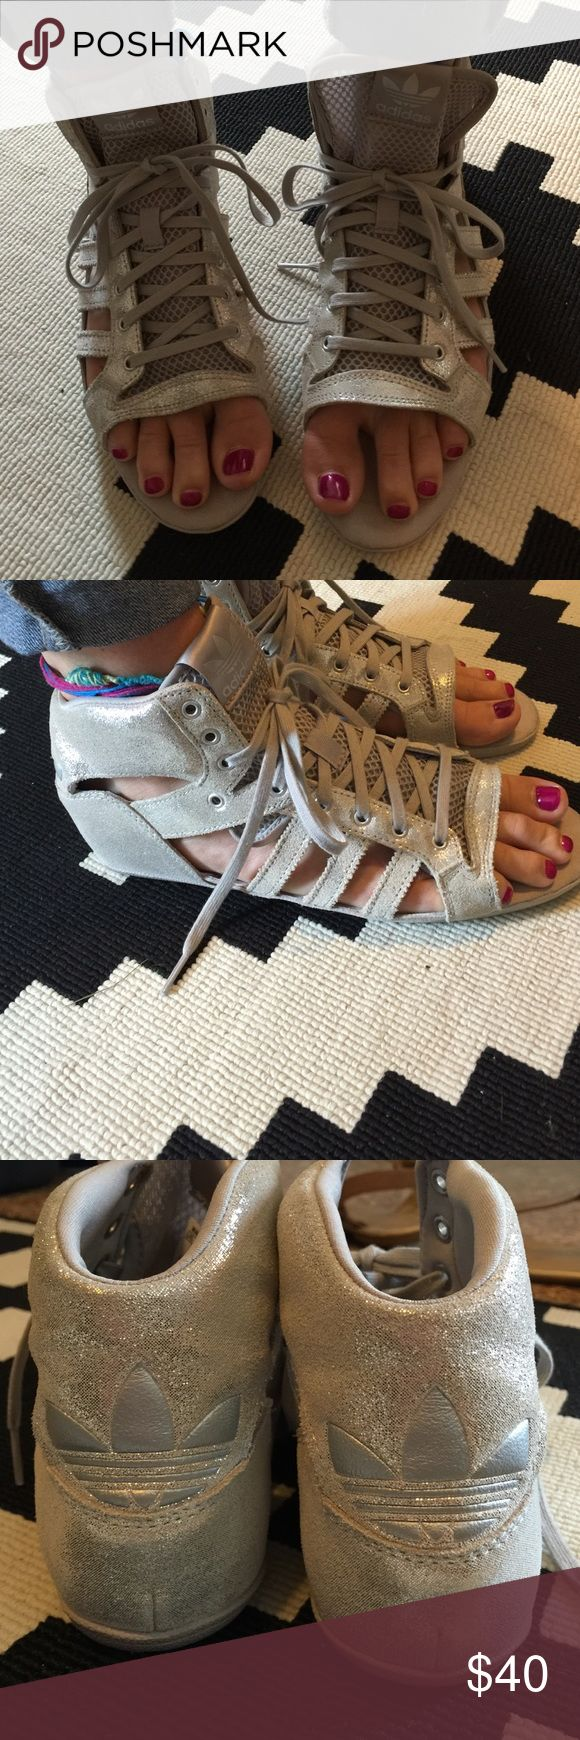 UK Adidas sleek series gladiator sandals - Silver These are awesome! Sold in the UK - Sleek series. adidas Shoes Athletic Shoes